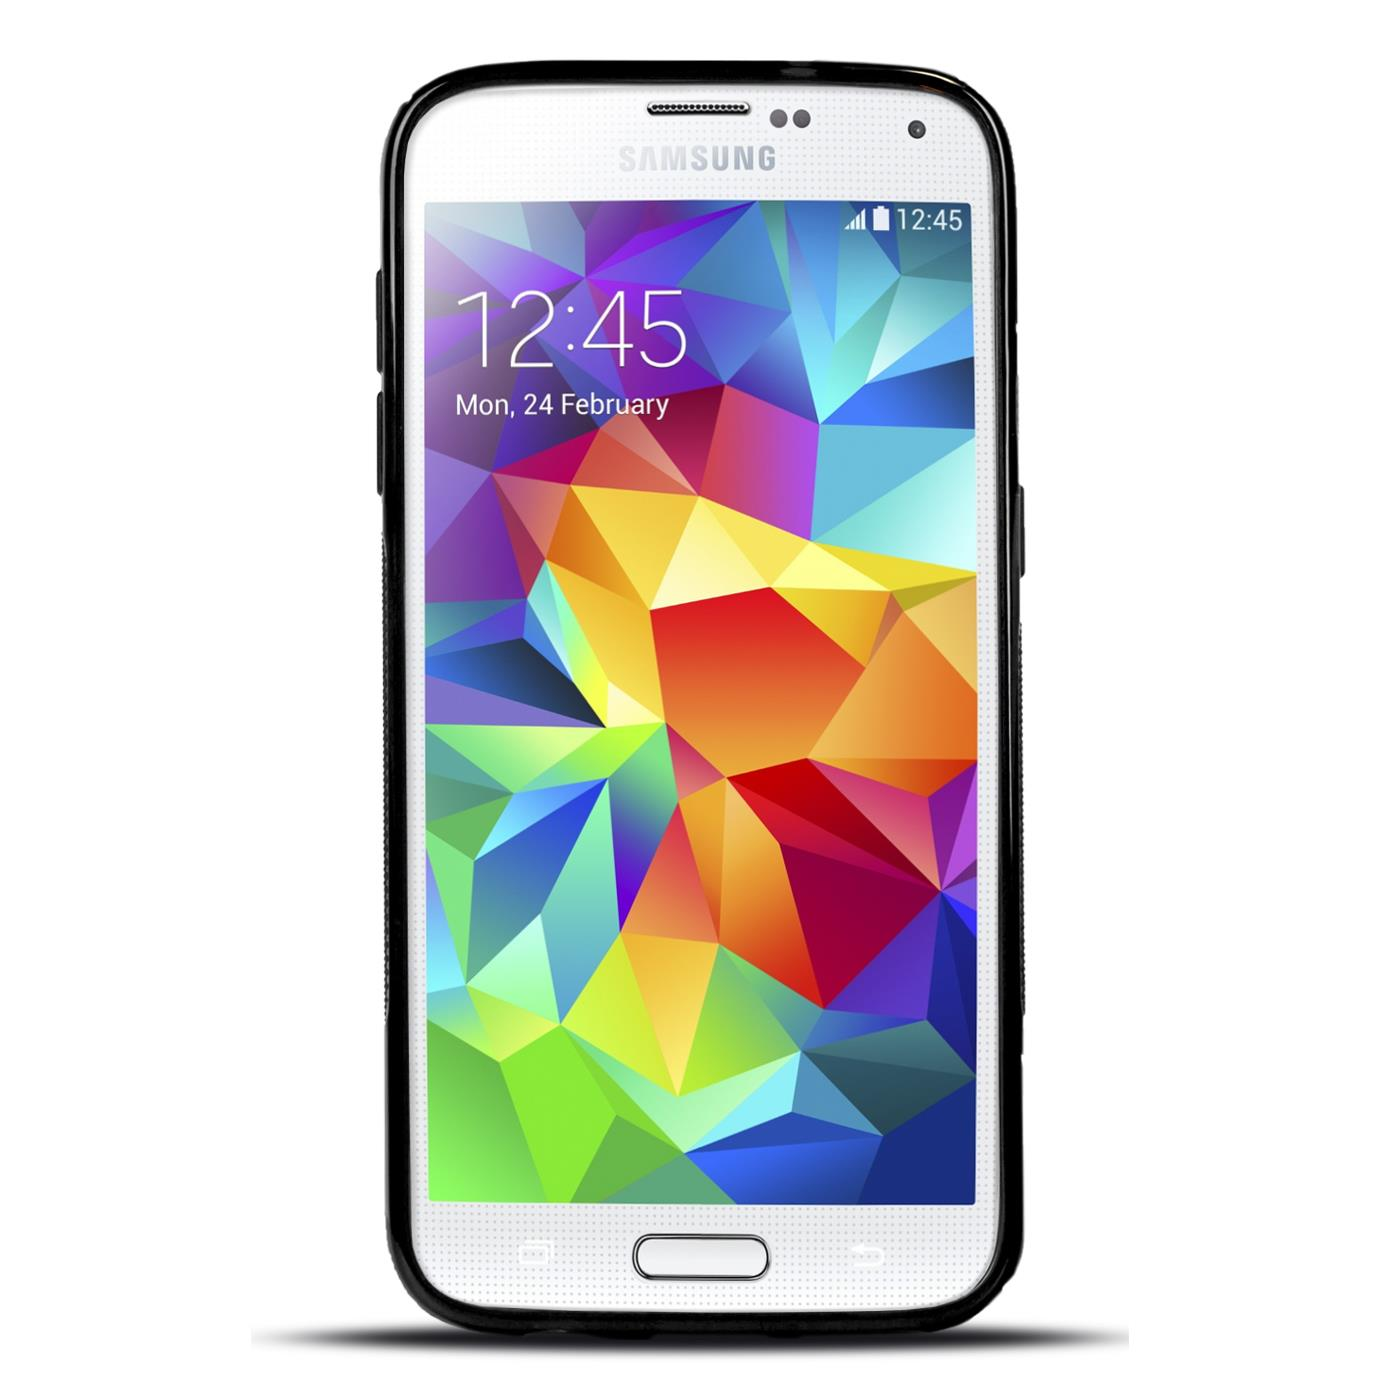 Samsung-Galaxy-s5-Neo-Silikon-Gel-S-Line-Case-Cover-Ultra-Thin-Slim-Back-Bumper Indexbild 21